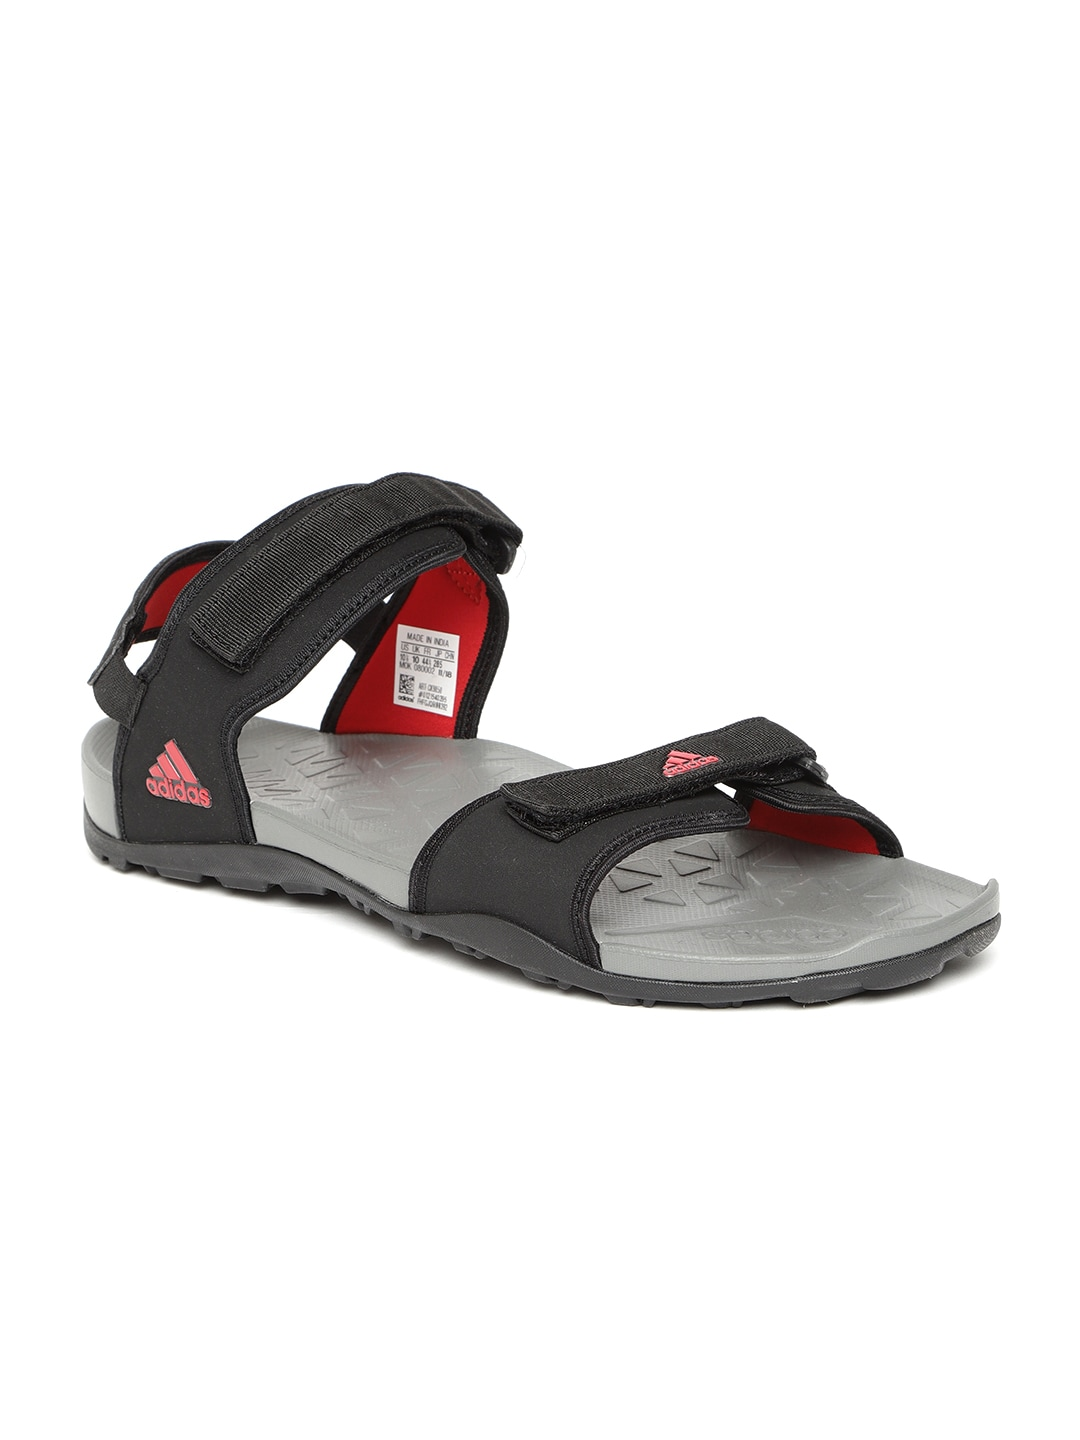 ba03ec1ce26b Adidas Sports Sandal - Buy Adidas Sports Sandal online in India